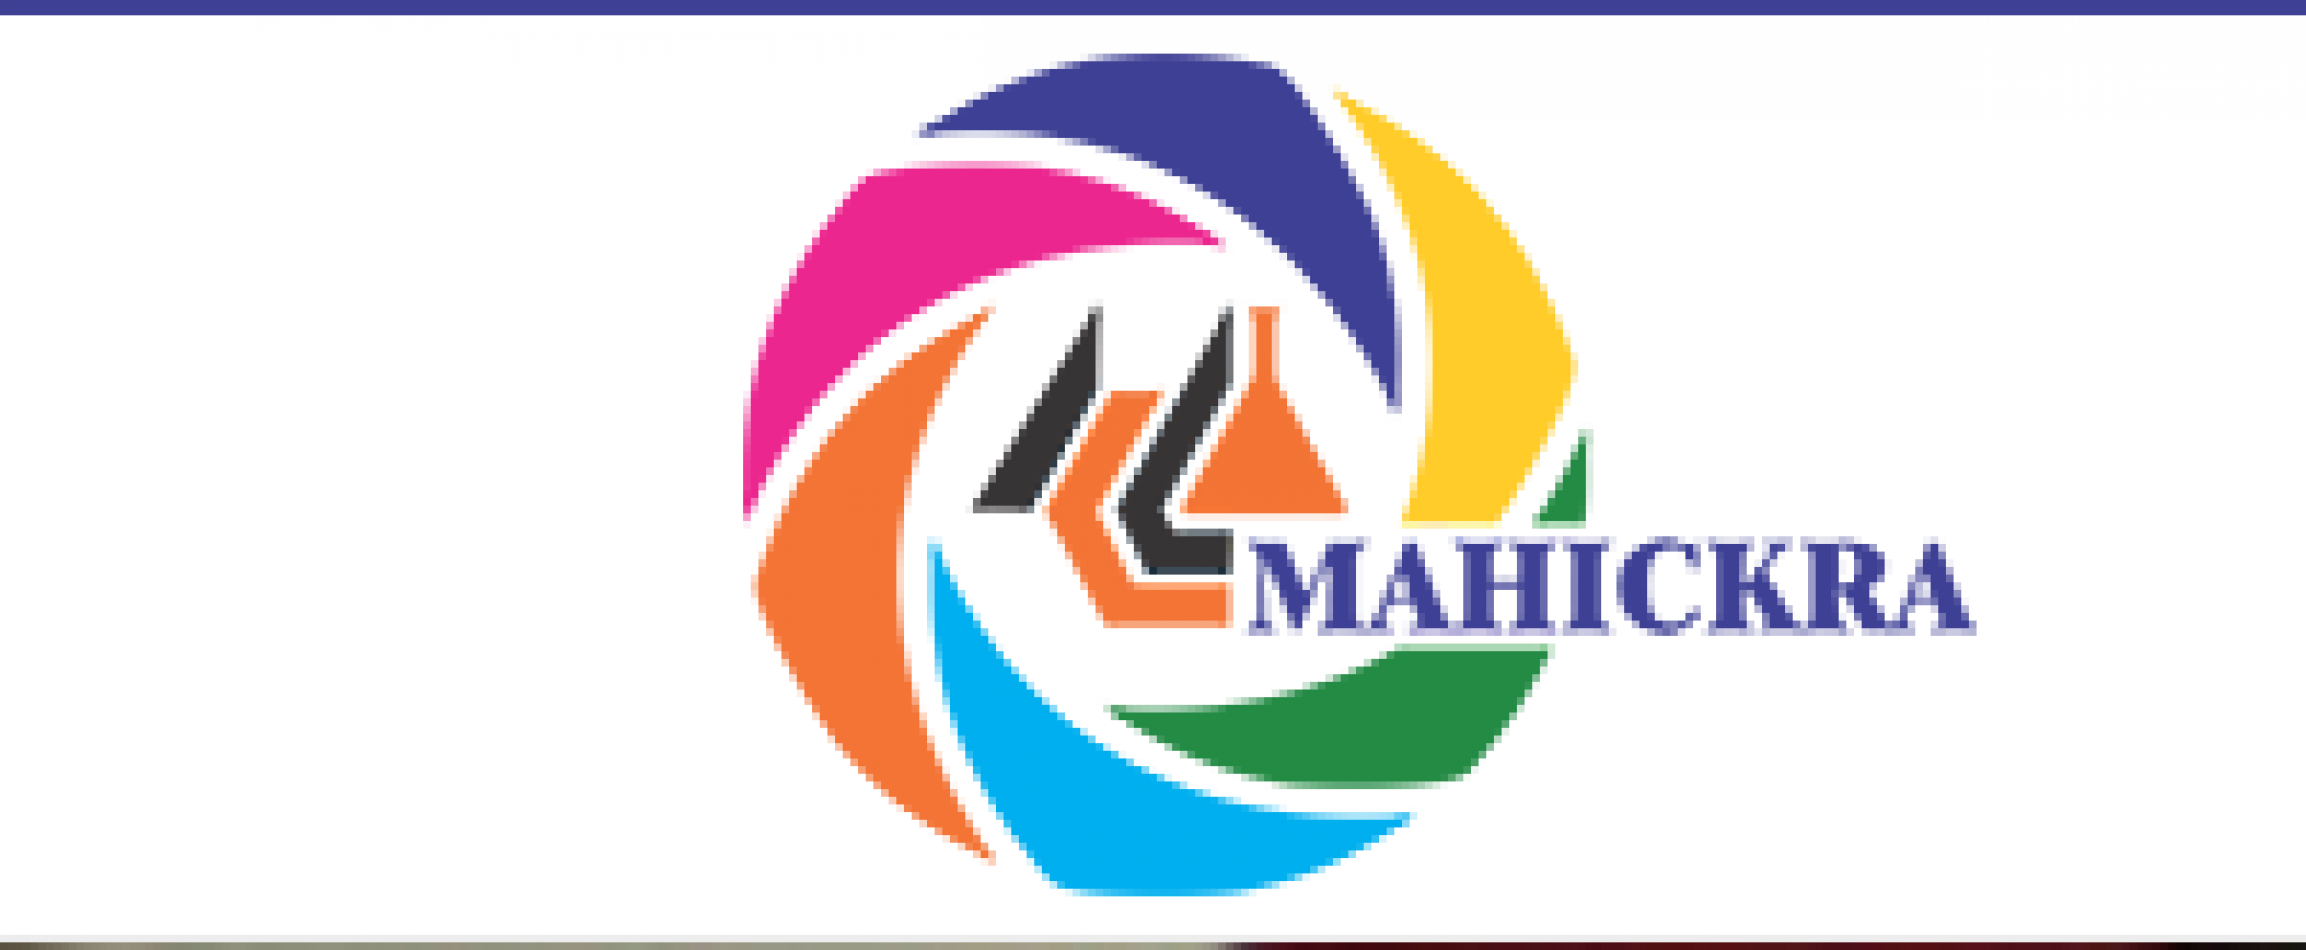 MAHICKRA CHEMICALS LIMITED